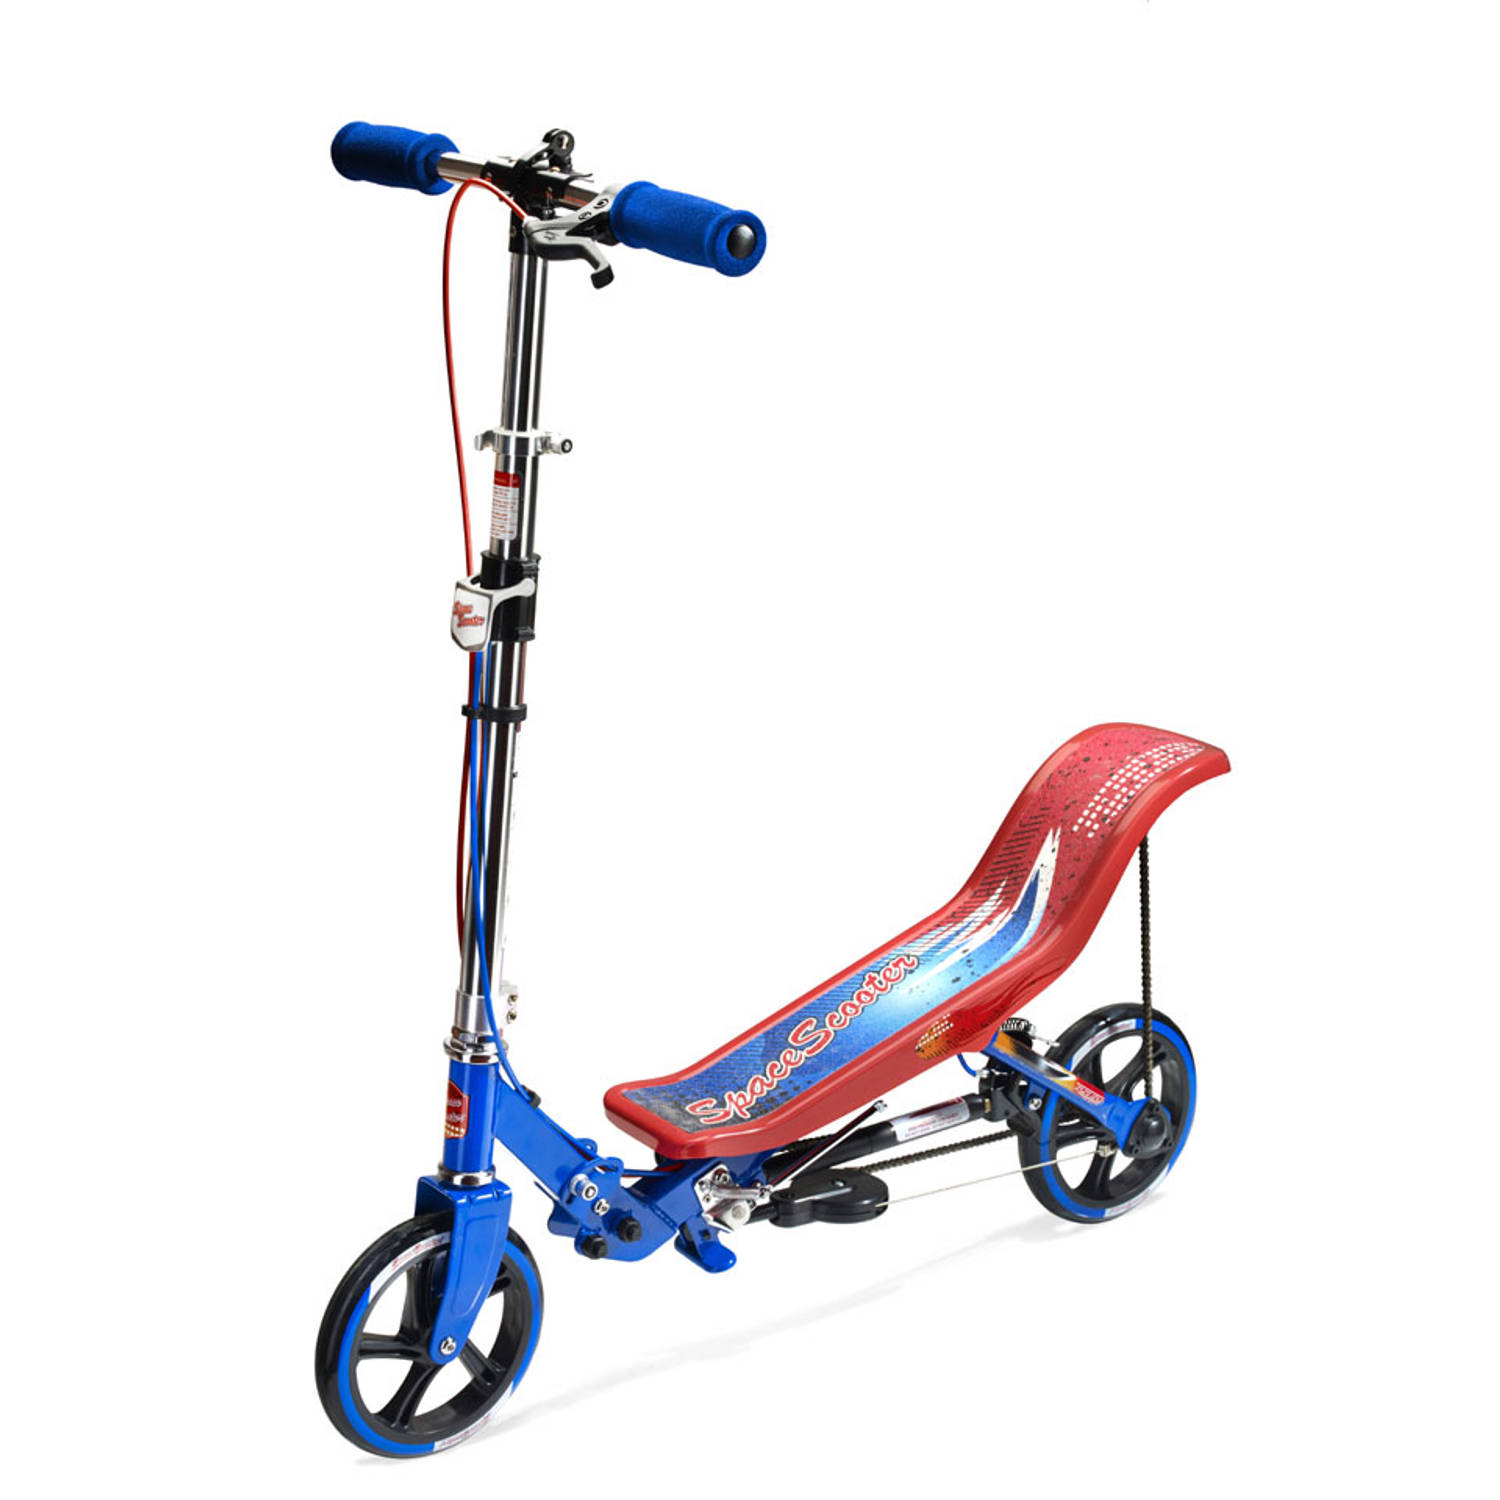 Step Space Scooter - rood/blauw